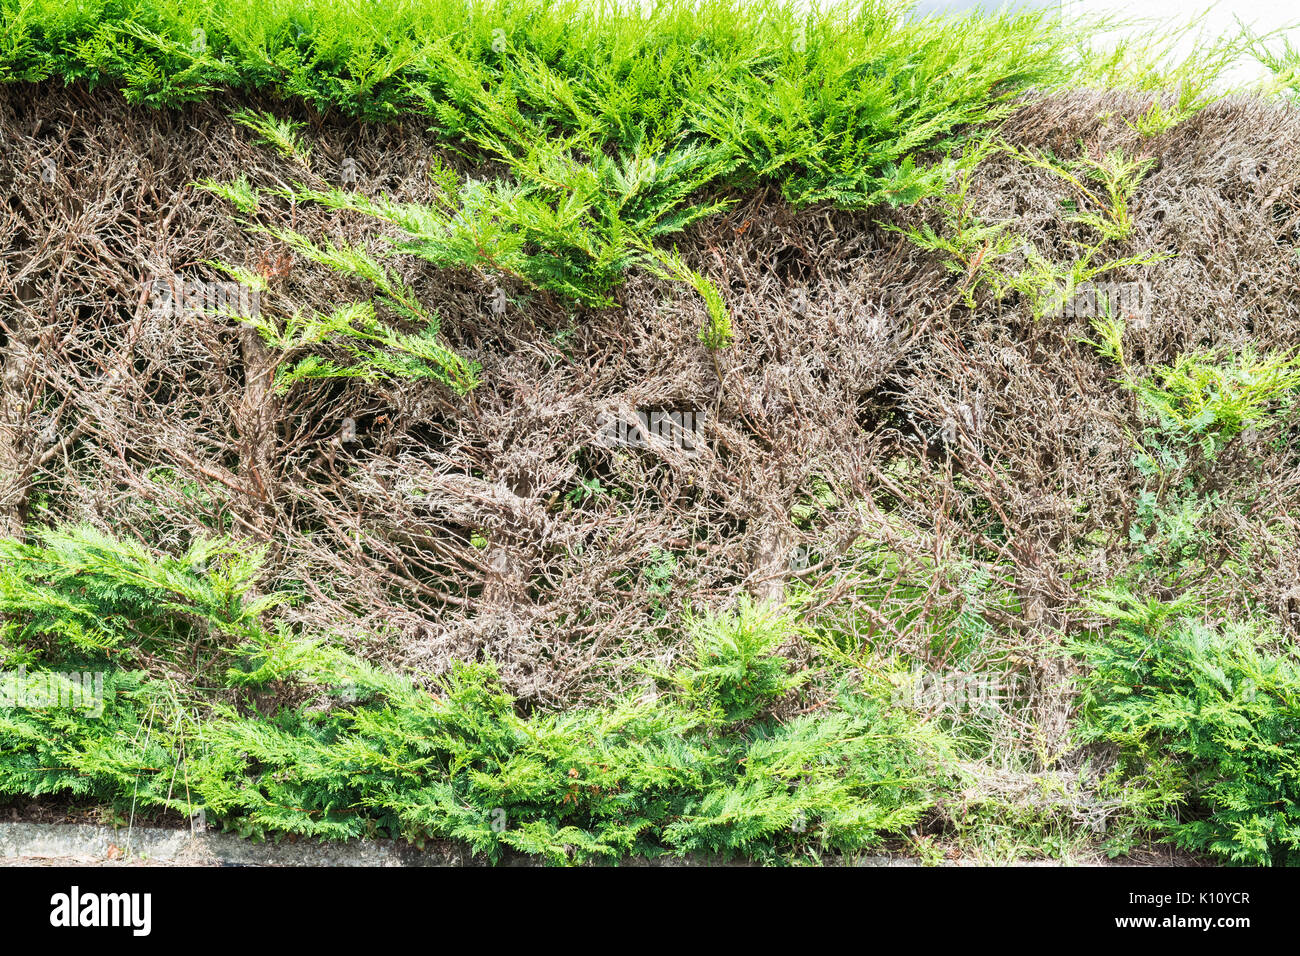 Conifer hedge with bare patches after cutting into old wood - Stock Image